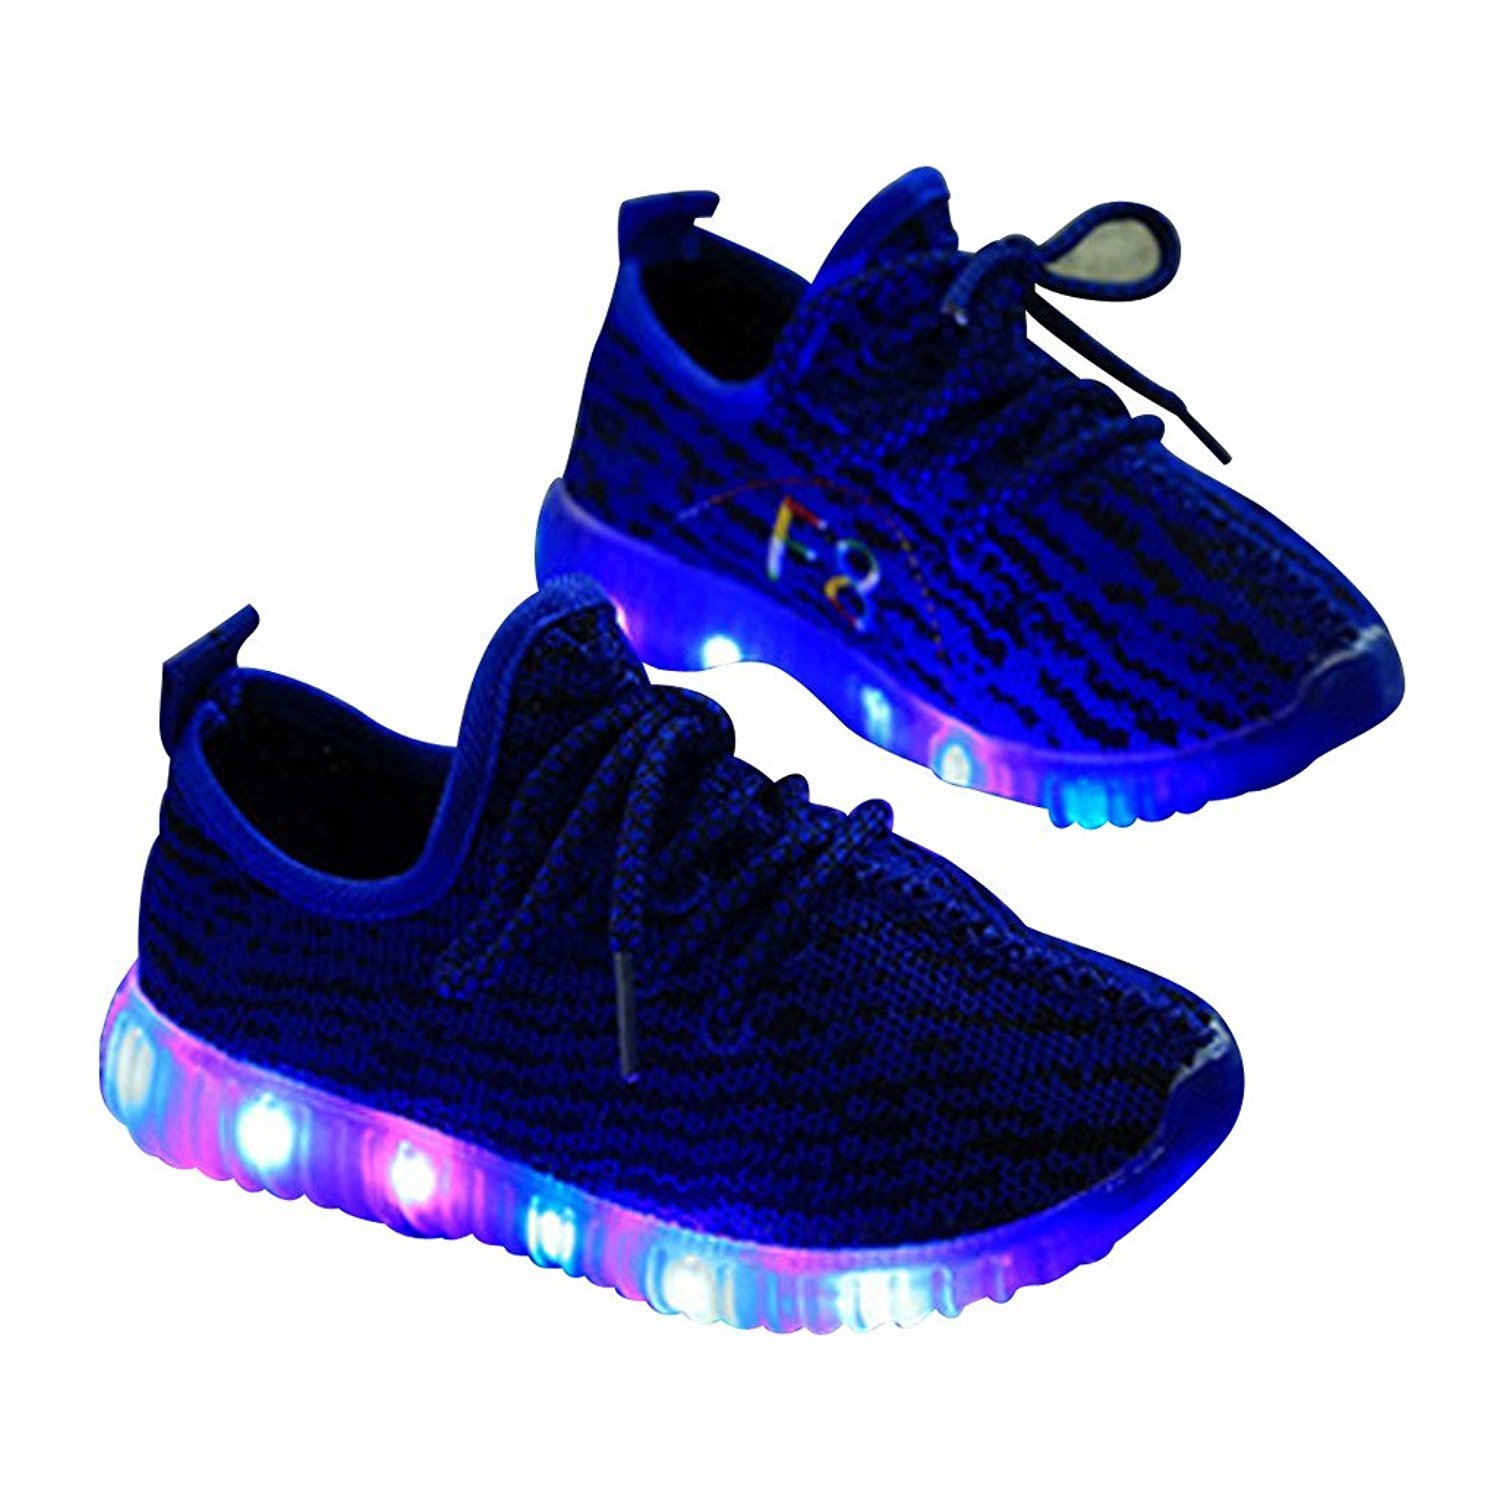 light kids buy sneakers ecfacac gold charging led riy top up shoes skechers high boys velcro wings flashing girls black usb discounted boy and for sell sport